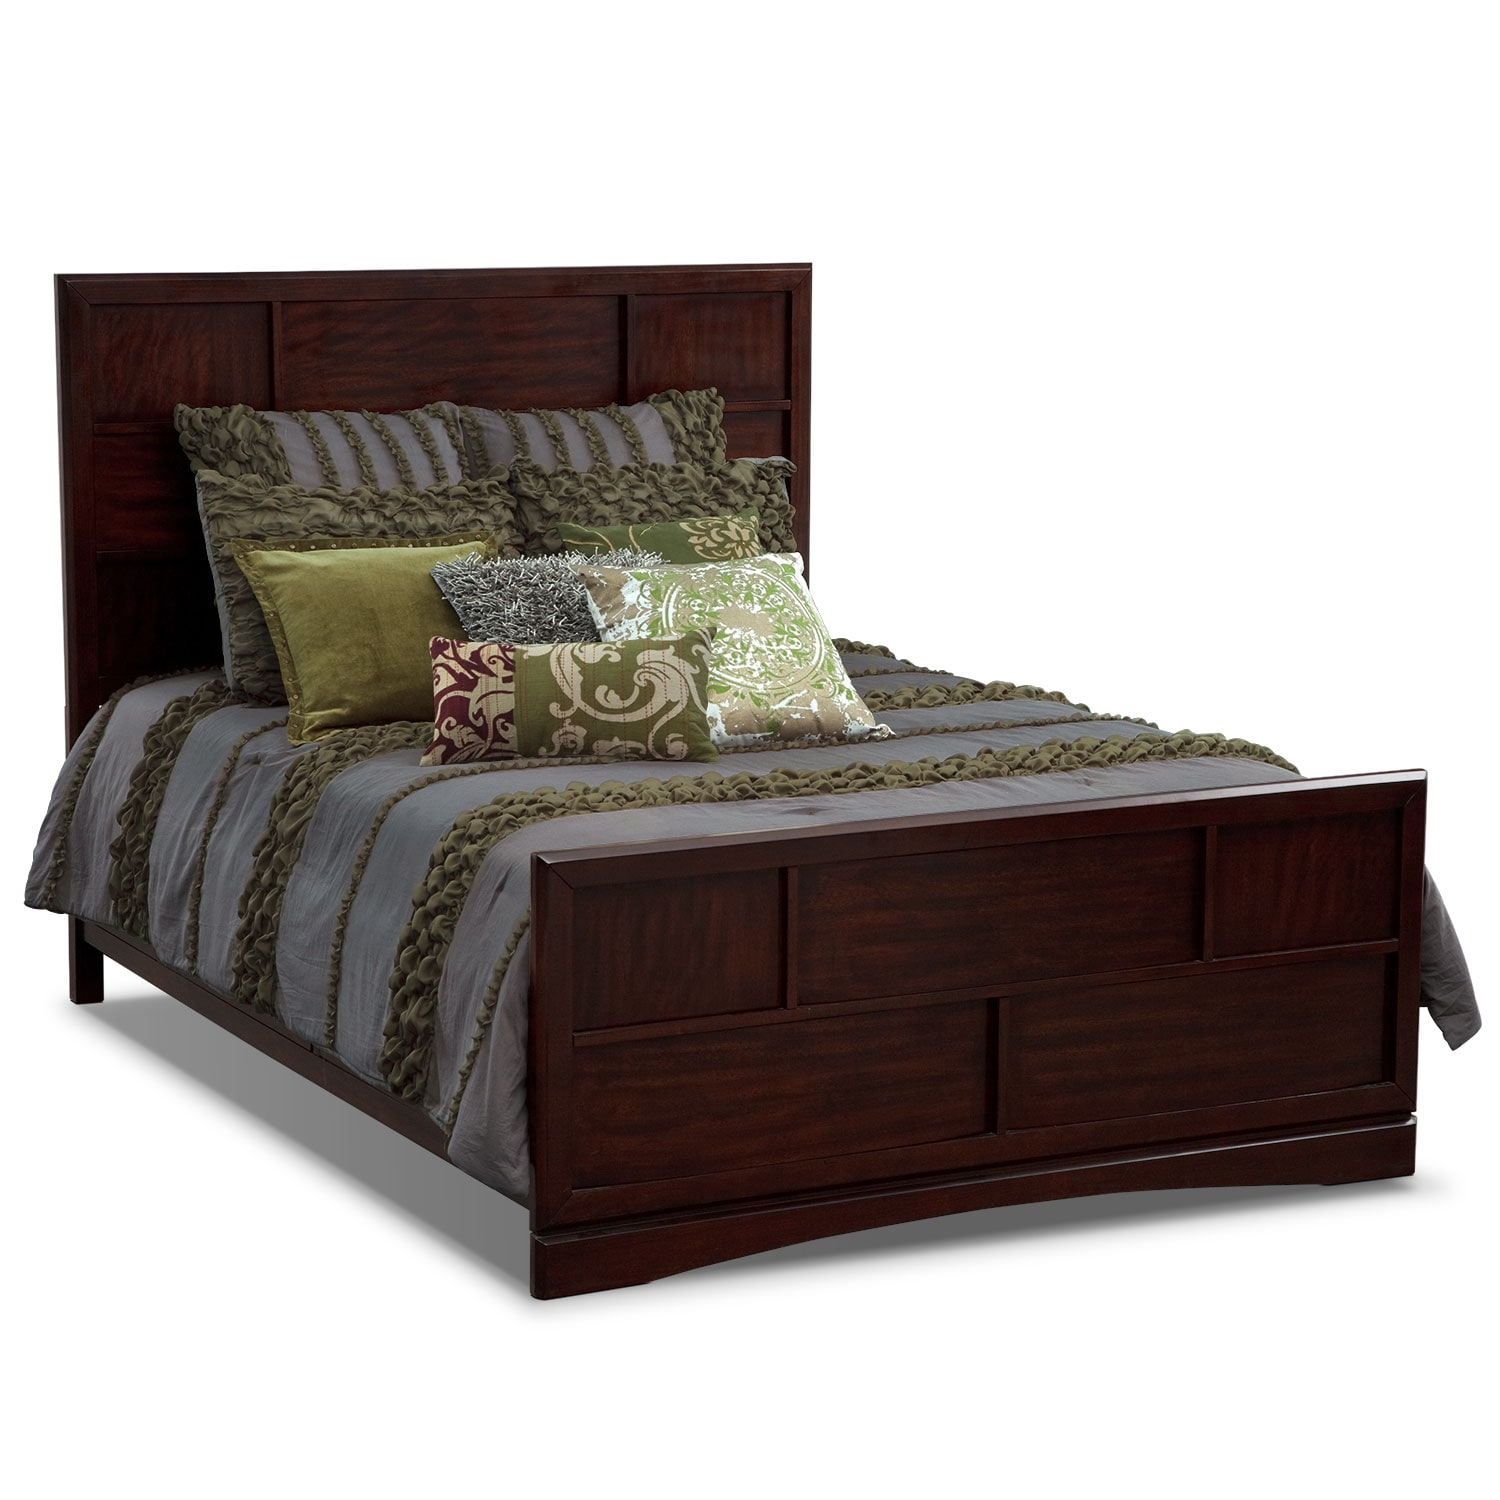 Caroline III King Bedding Set